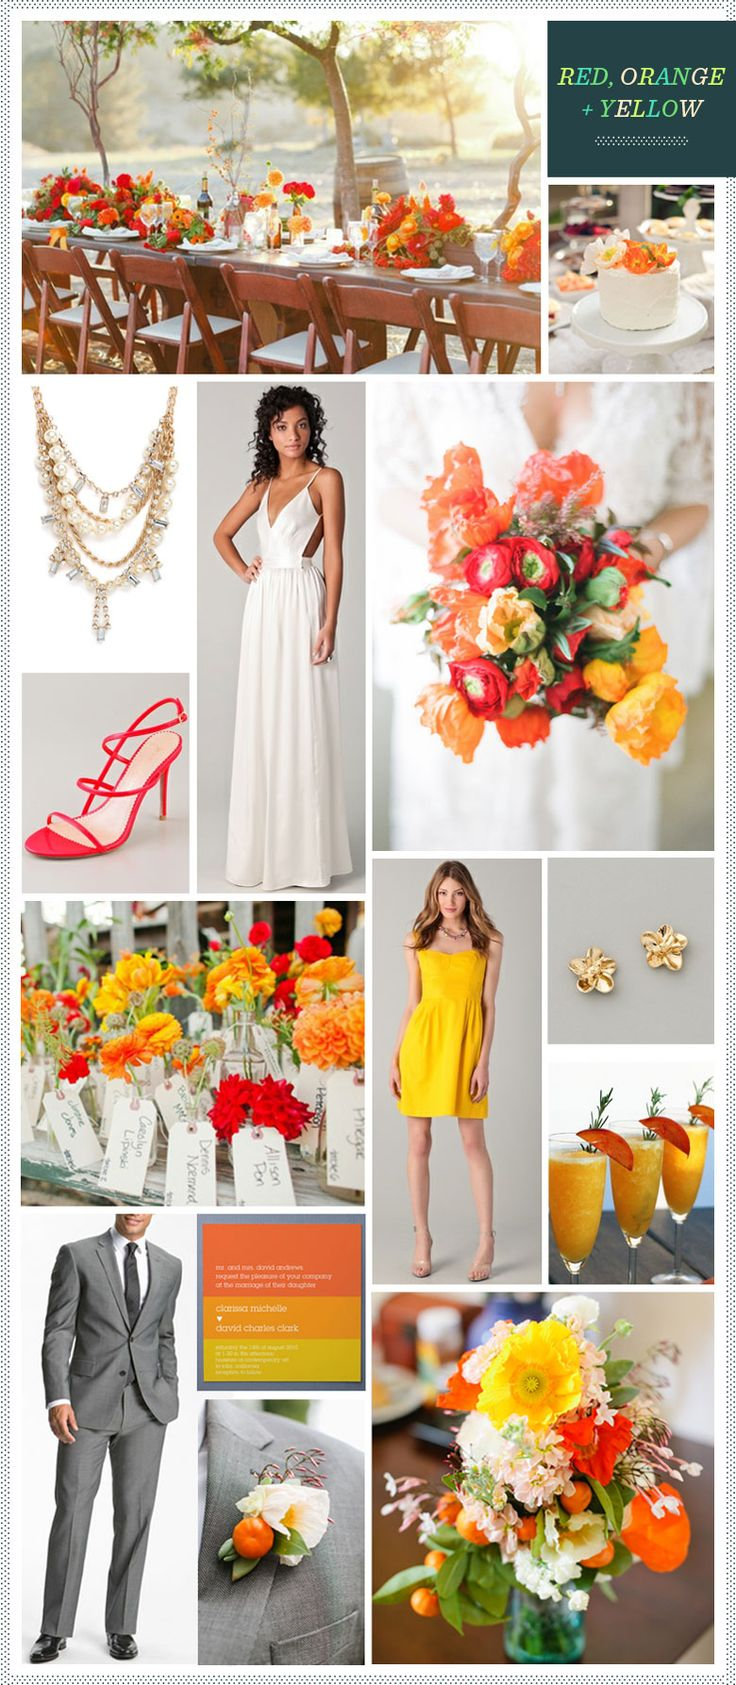 Red, Orange + Yellow wedding inspiration - sum but not all of this works